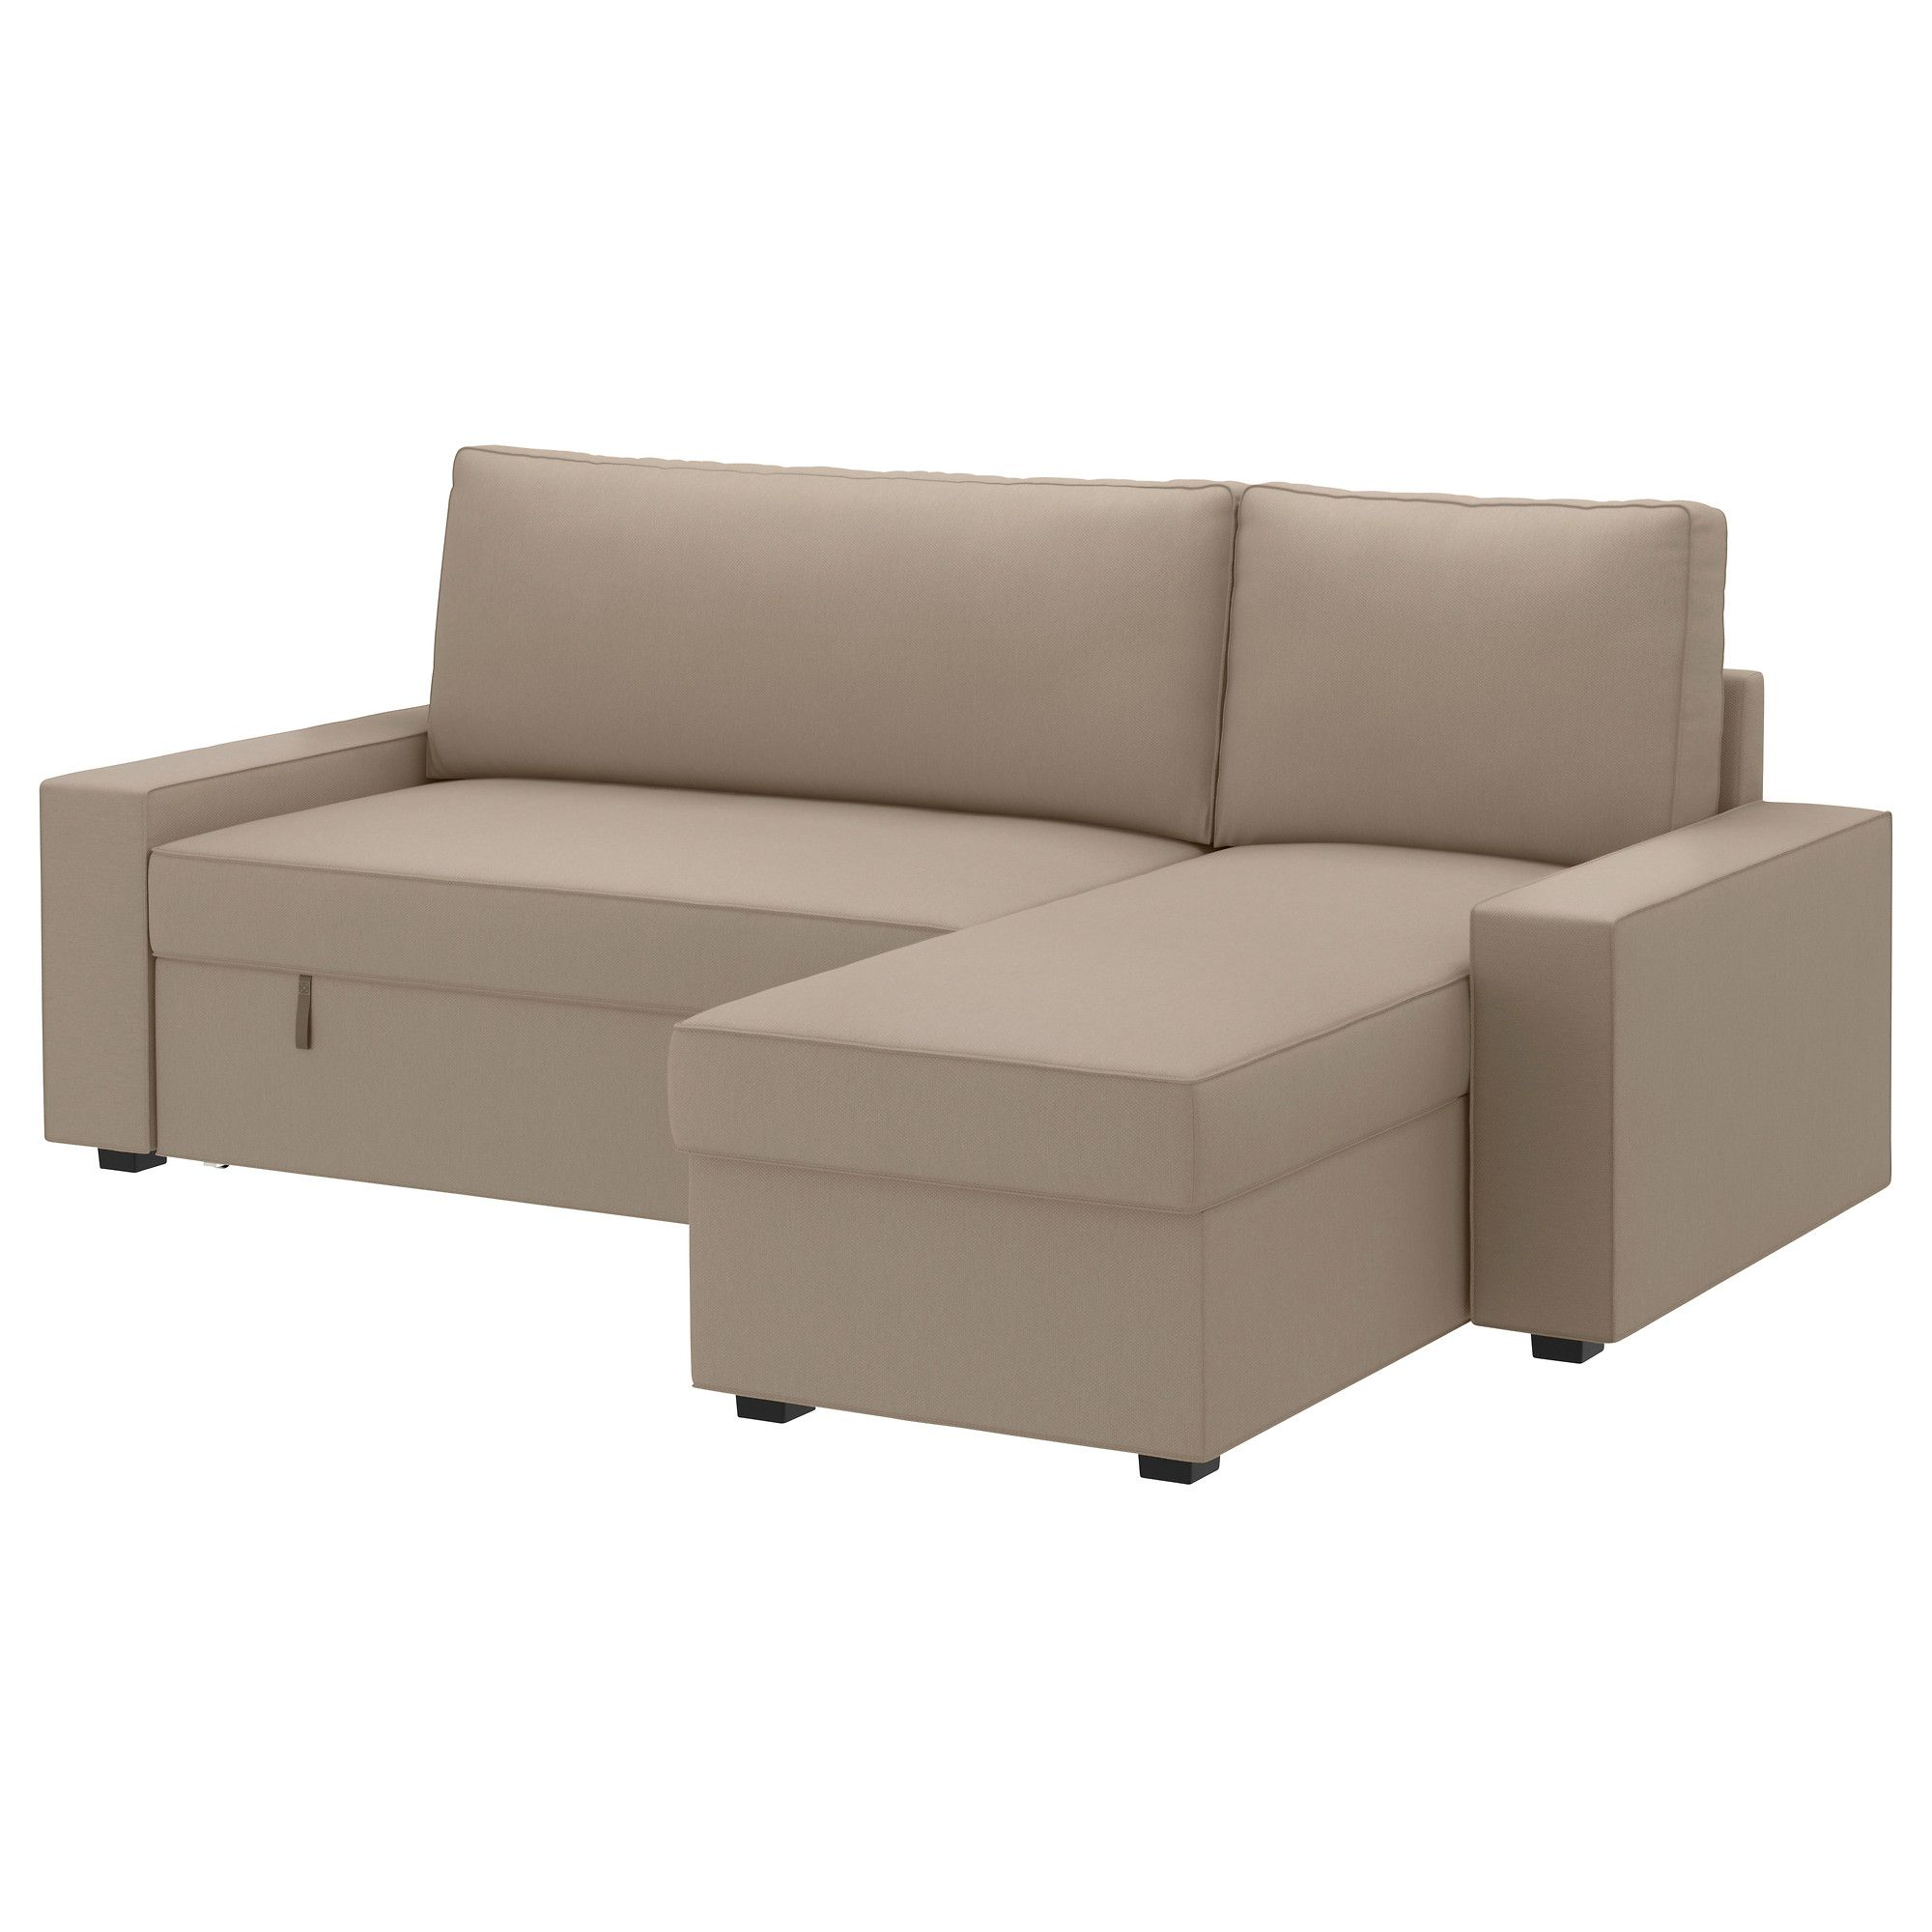 small full sleeper spaces size bed sectionals with indoors sofas loveseat of for chaise lounge sofa chairs bedroom sectional set attached